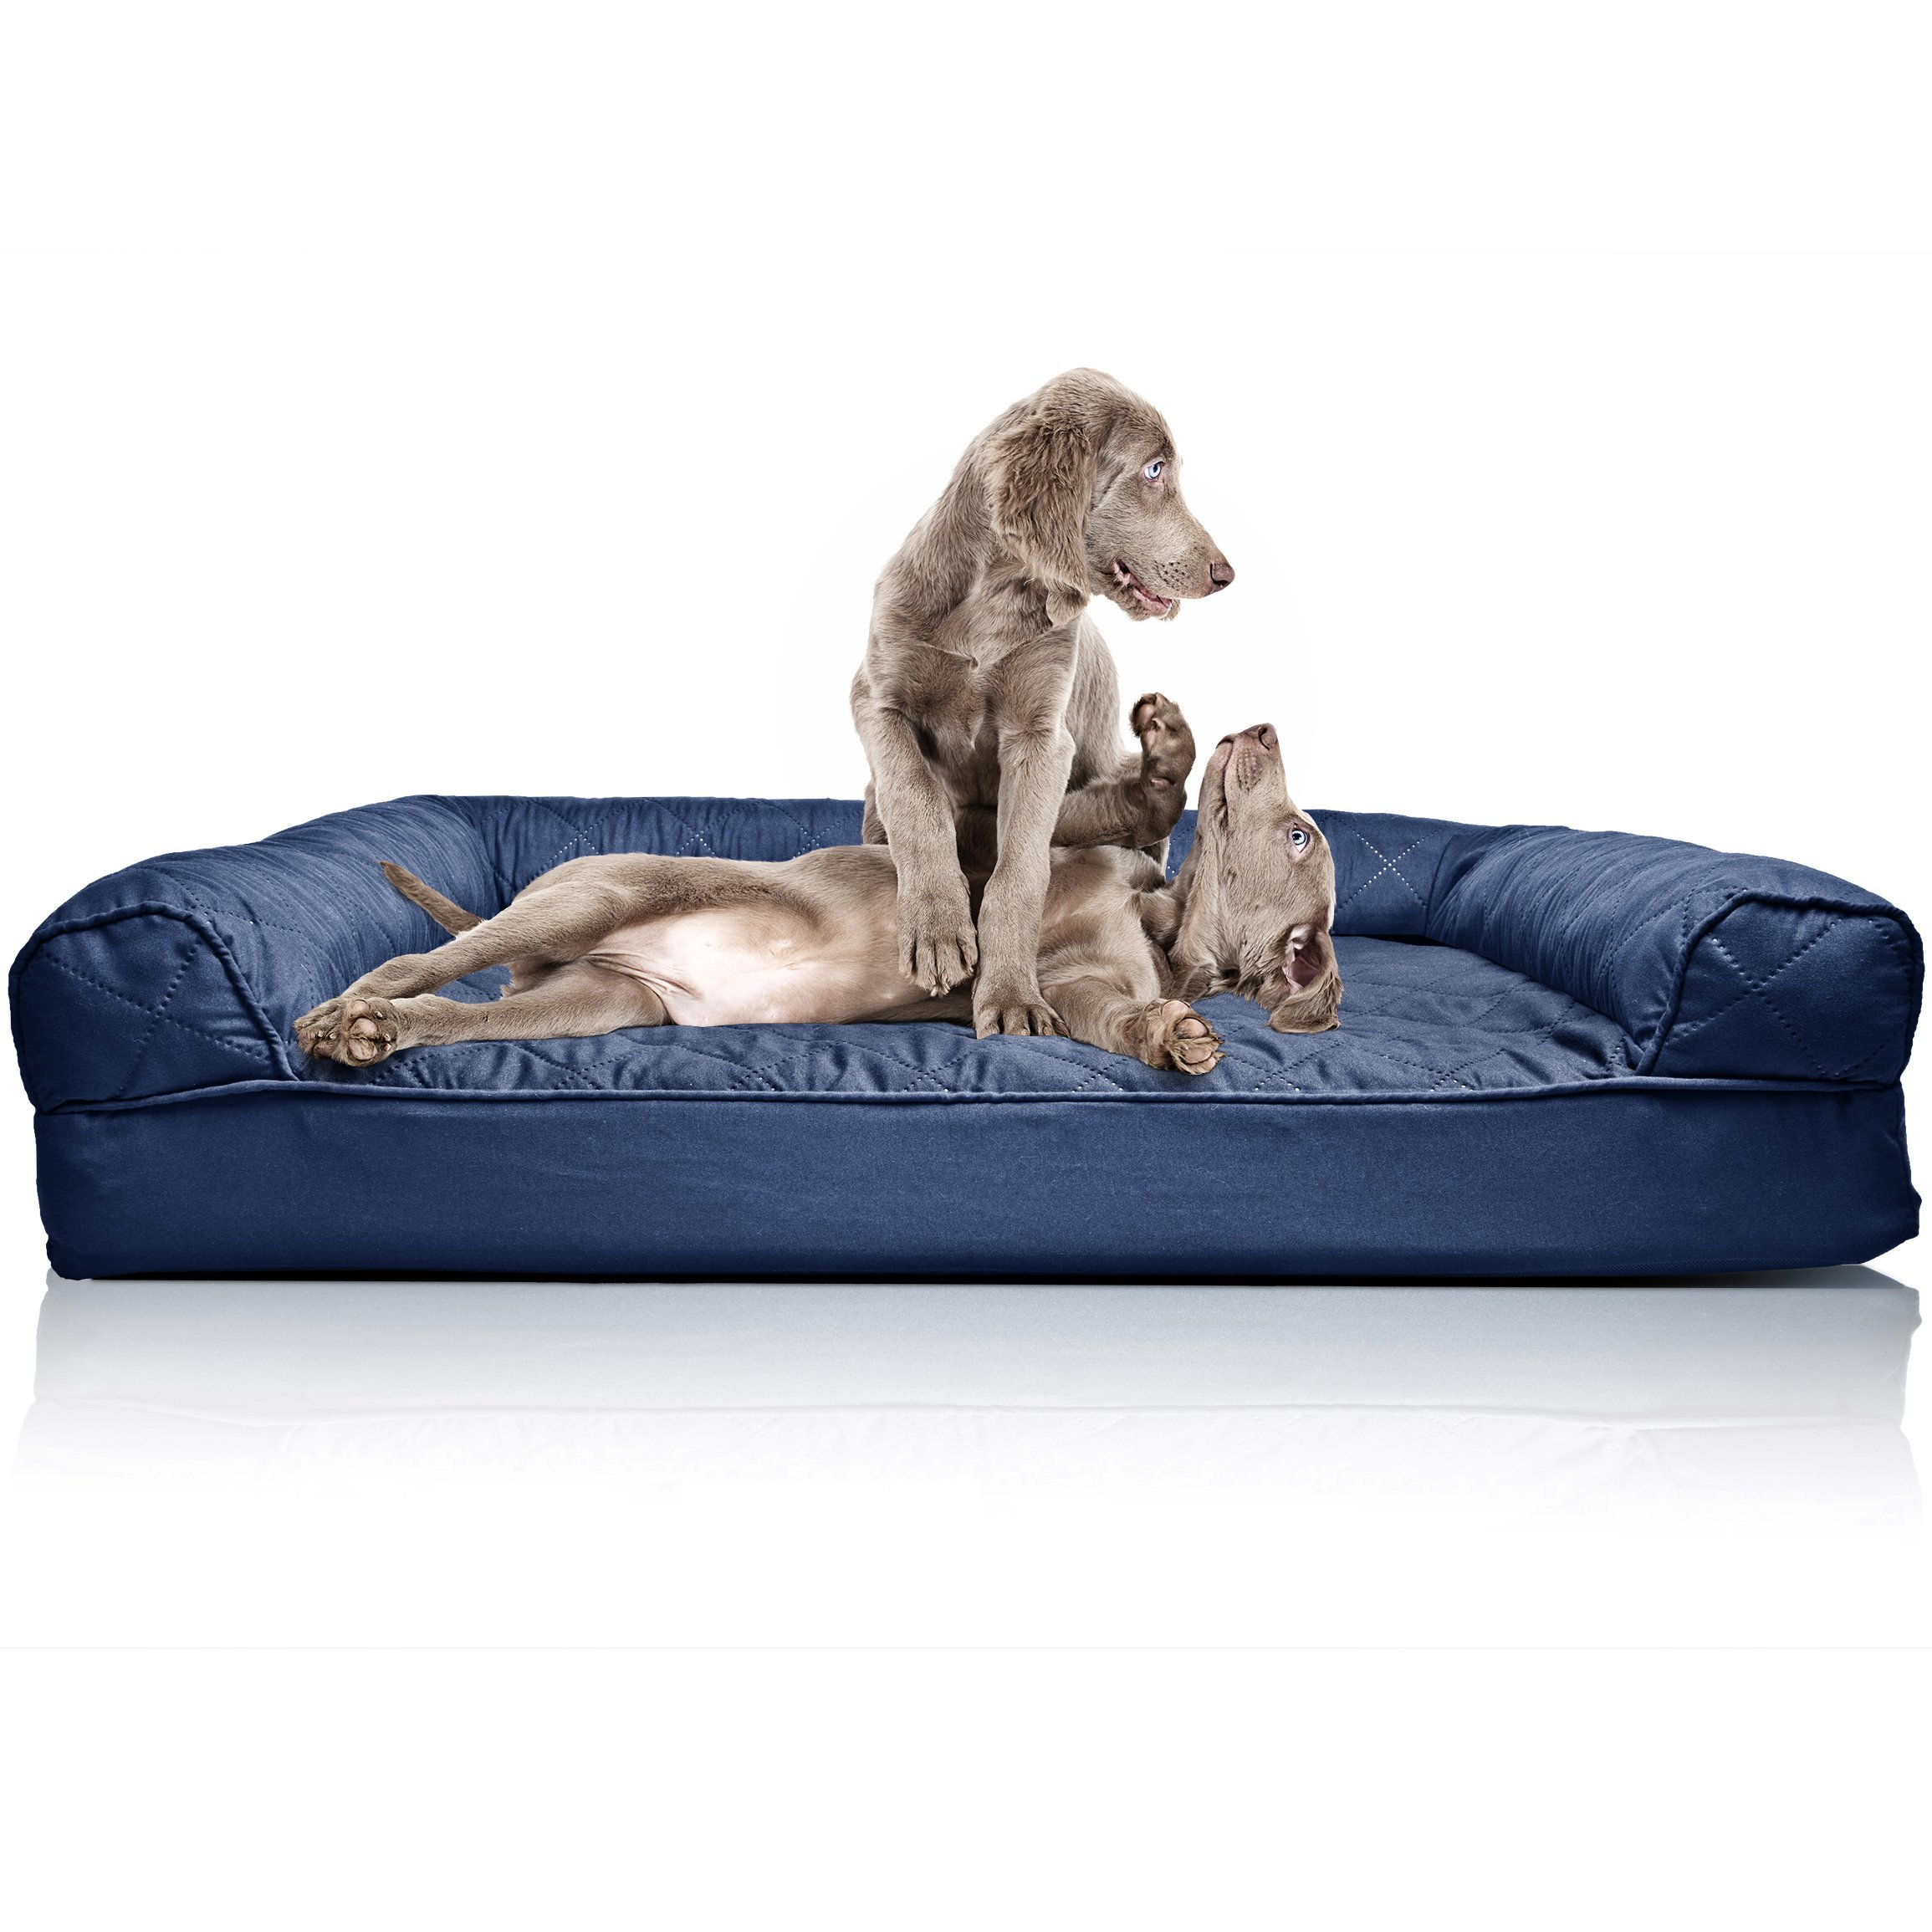 Furhaven Pet Dog Bed | Orthopedic Quilted Traditional Sofa-Style Living Room Couch Pet Bed w/ Removable Cover for Dogs & Cats, Navy, Jumbo by Furhaven